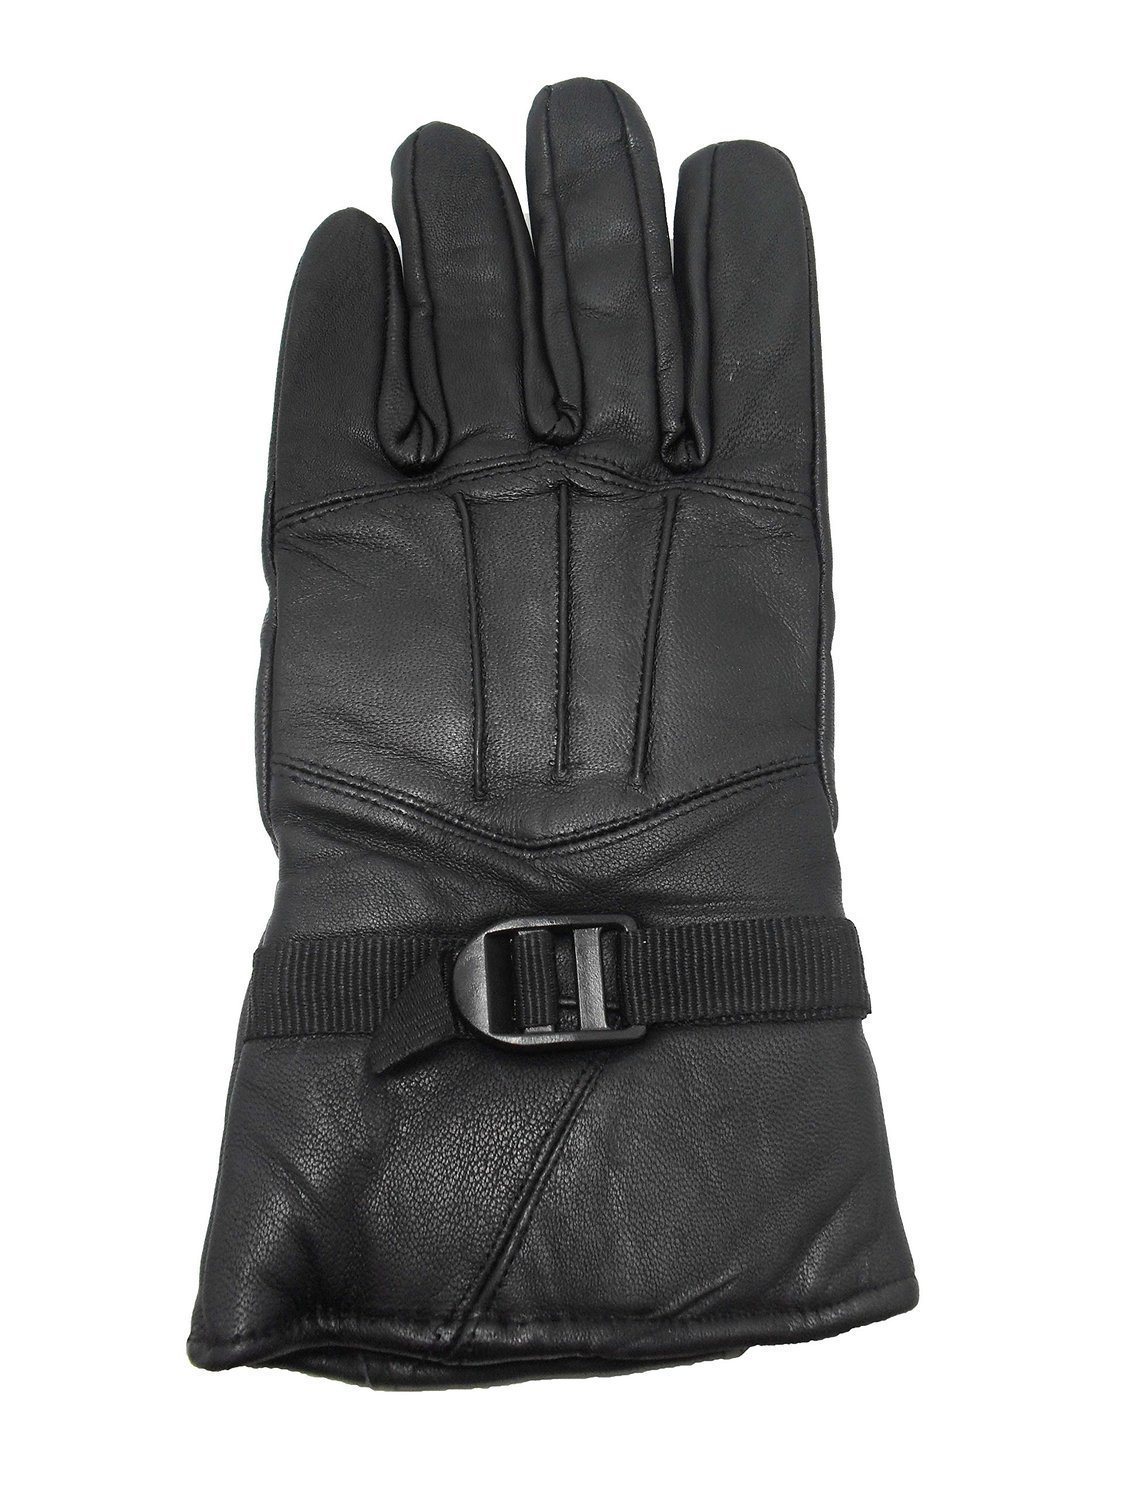 Mens leather gloves amazon uk -  Year Warranty Pure Leather Winter And Riding Gloves For Men Black L Men Gloves Boy Gloves Gents Gloves Special For Male Amazon In Car Motorbike